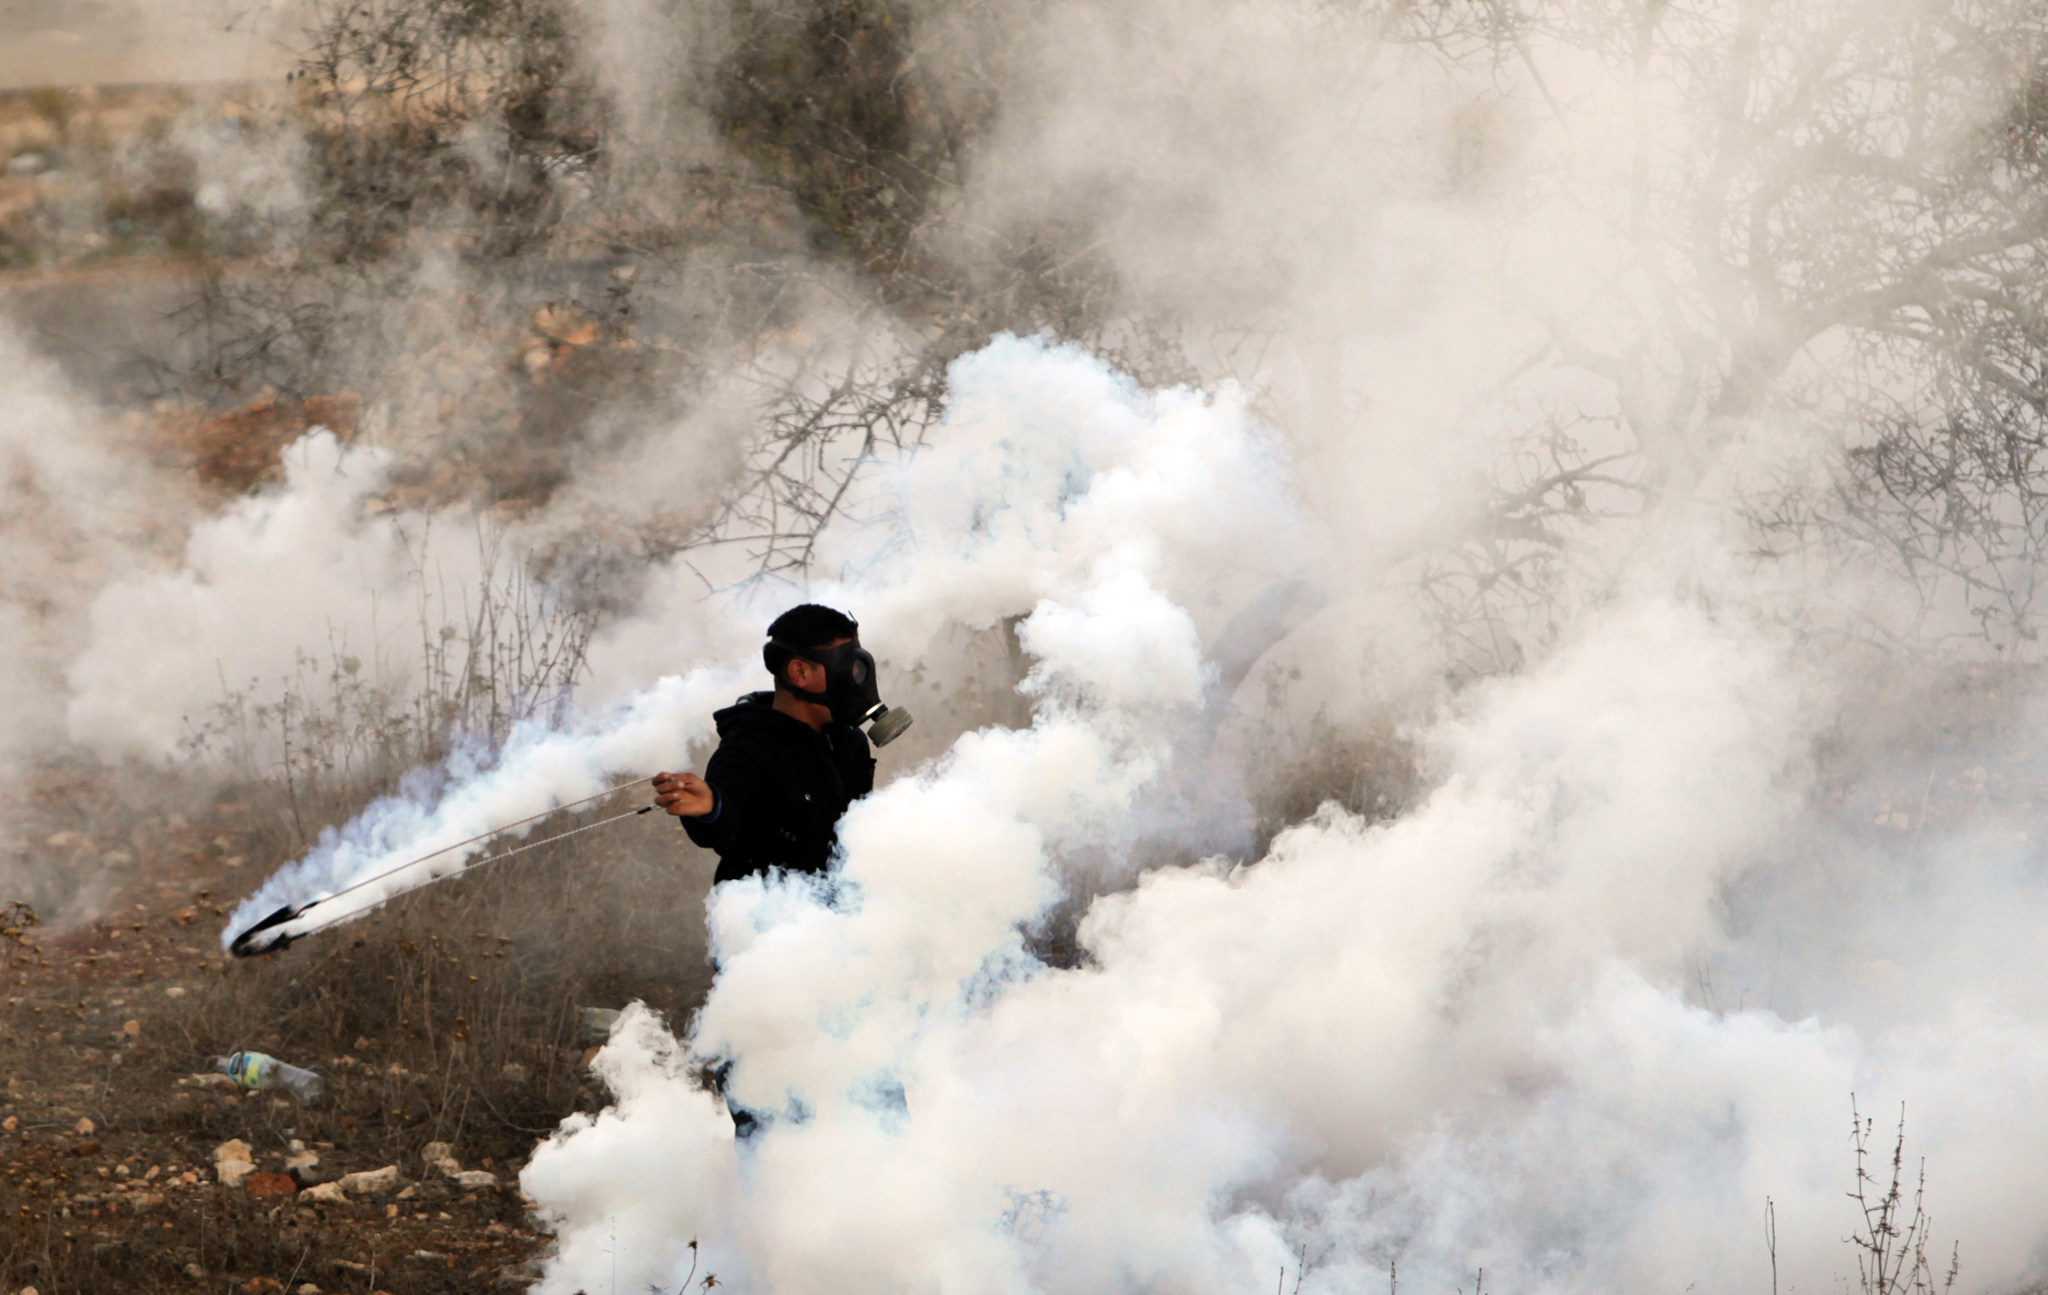 A Palestinian youth wearing a gas mask to protect against tear gas, lobs a stone during clashes with Israeli soldiers close to the Israeli Ofer military prison, near the West Bank village of Betunia